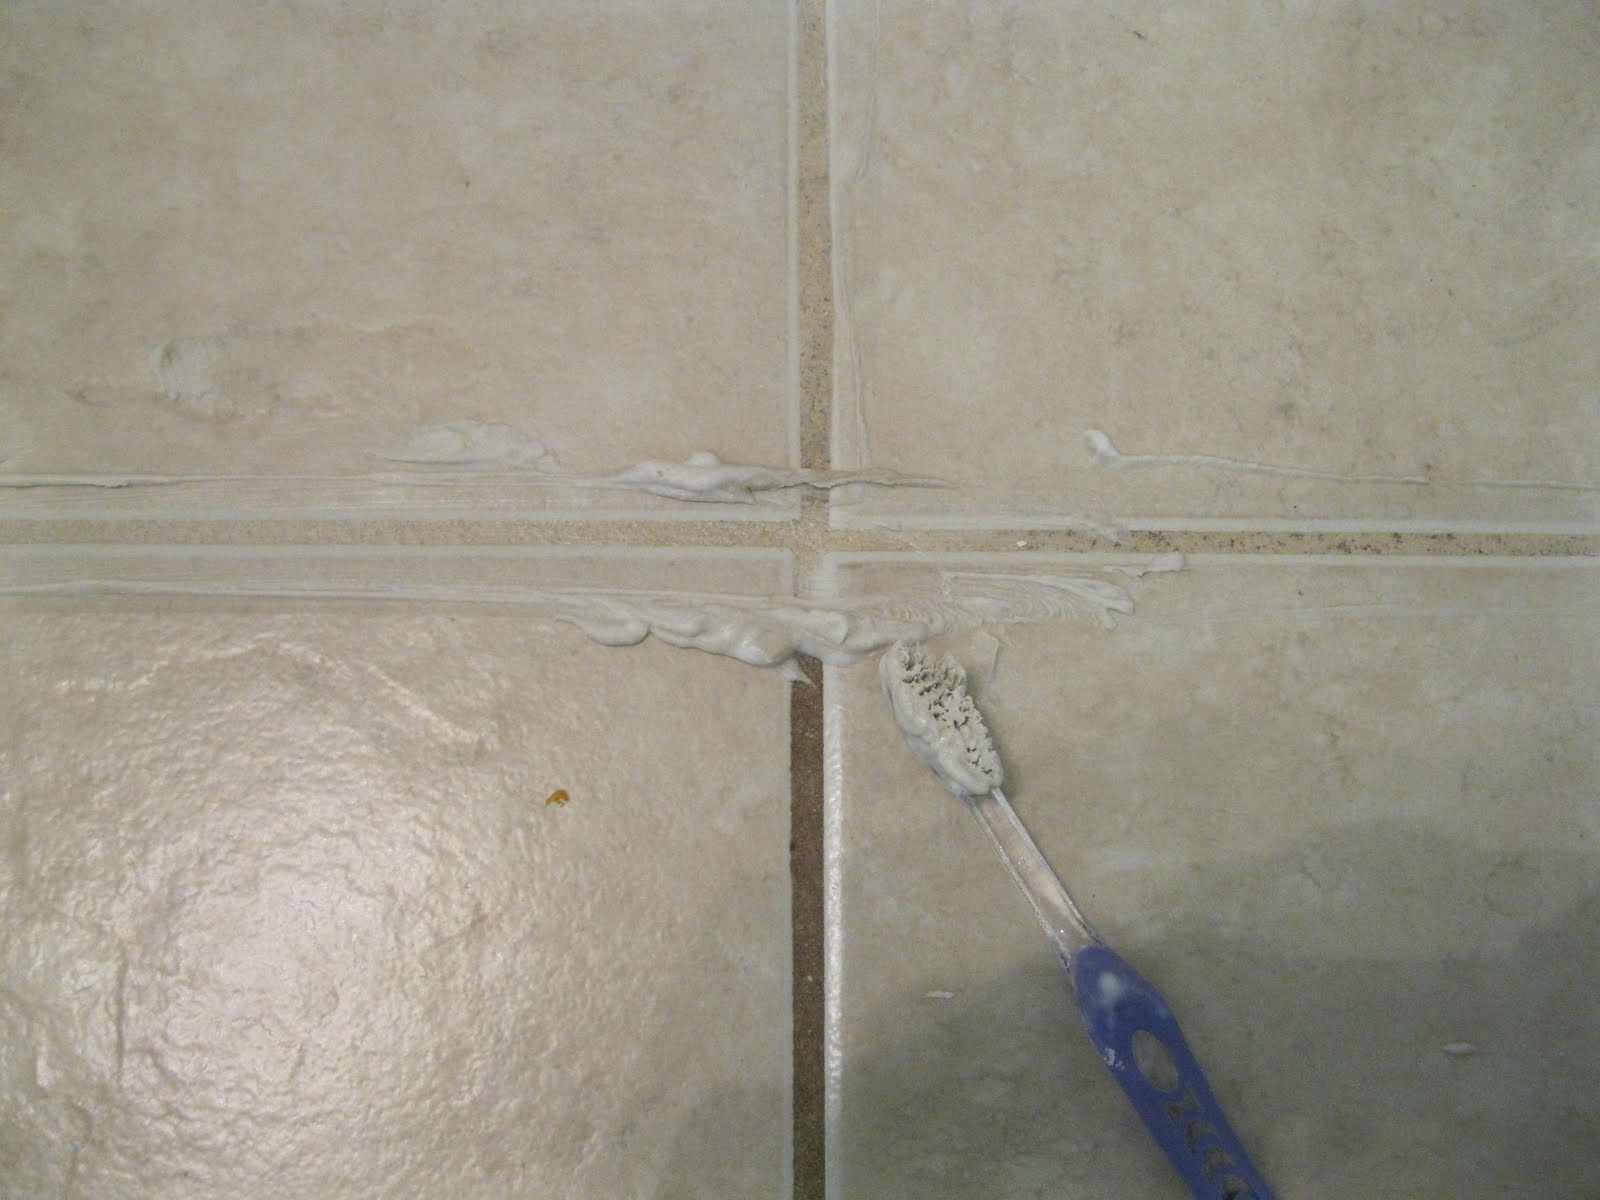 Highly Effective Ways To Restore Dirty Tile Grout TopCleaningTipscom - Cleaning shower tiles with vinegar